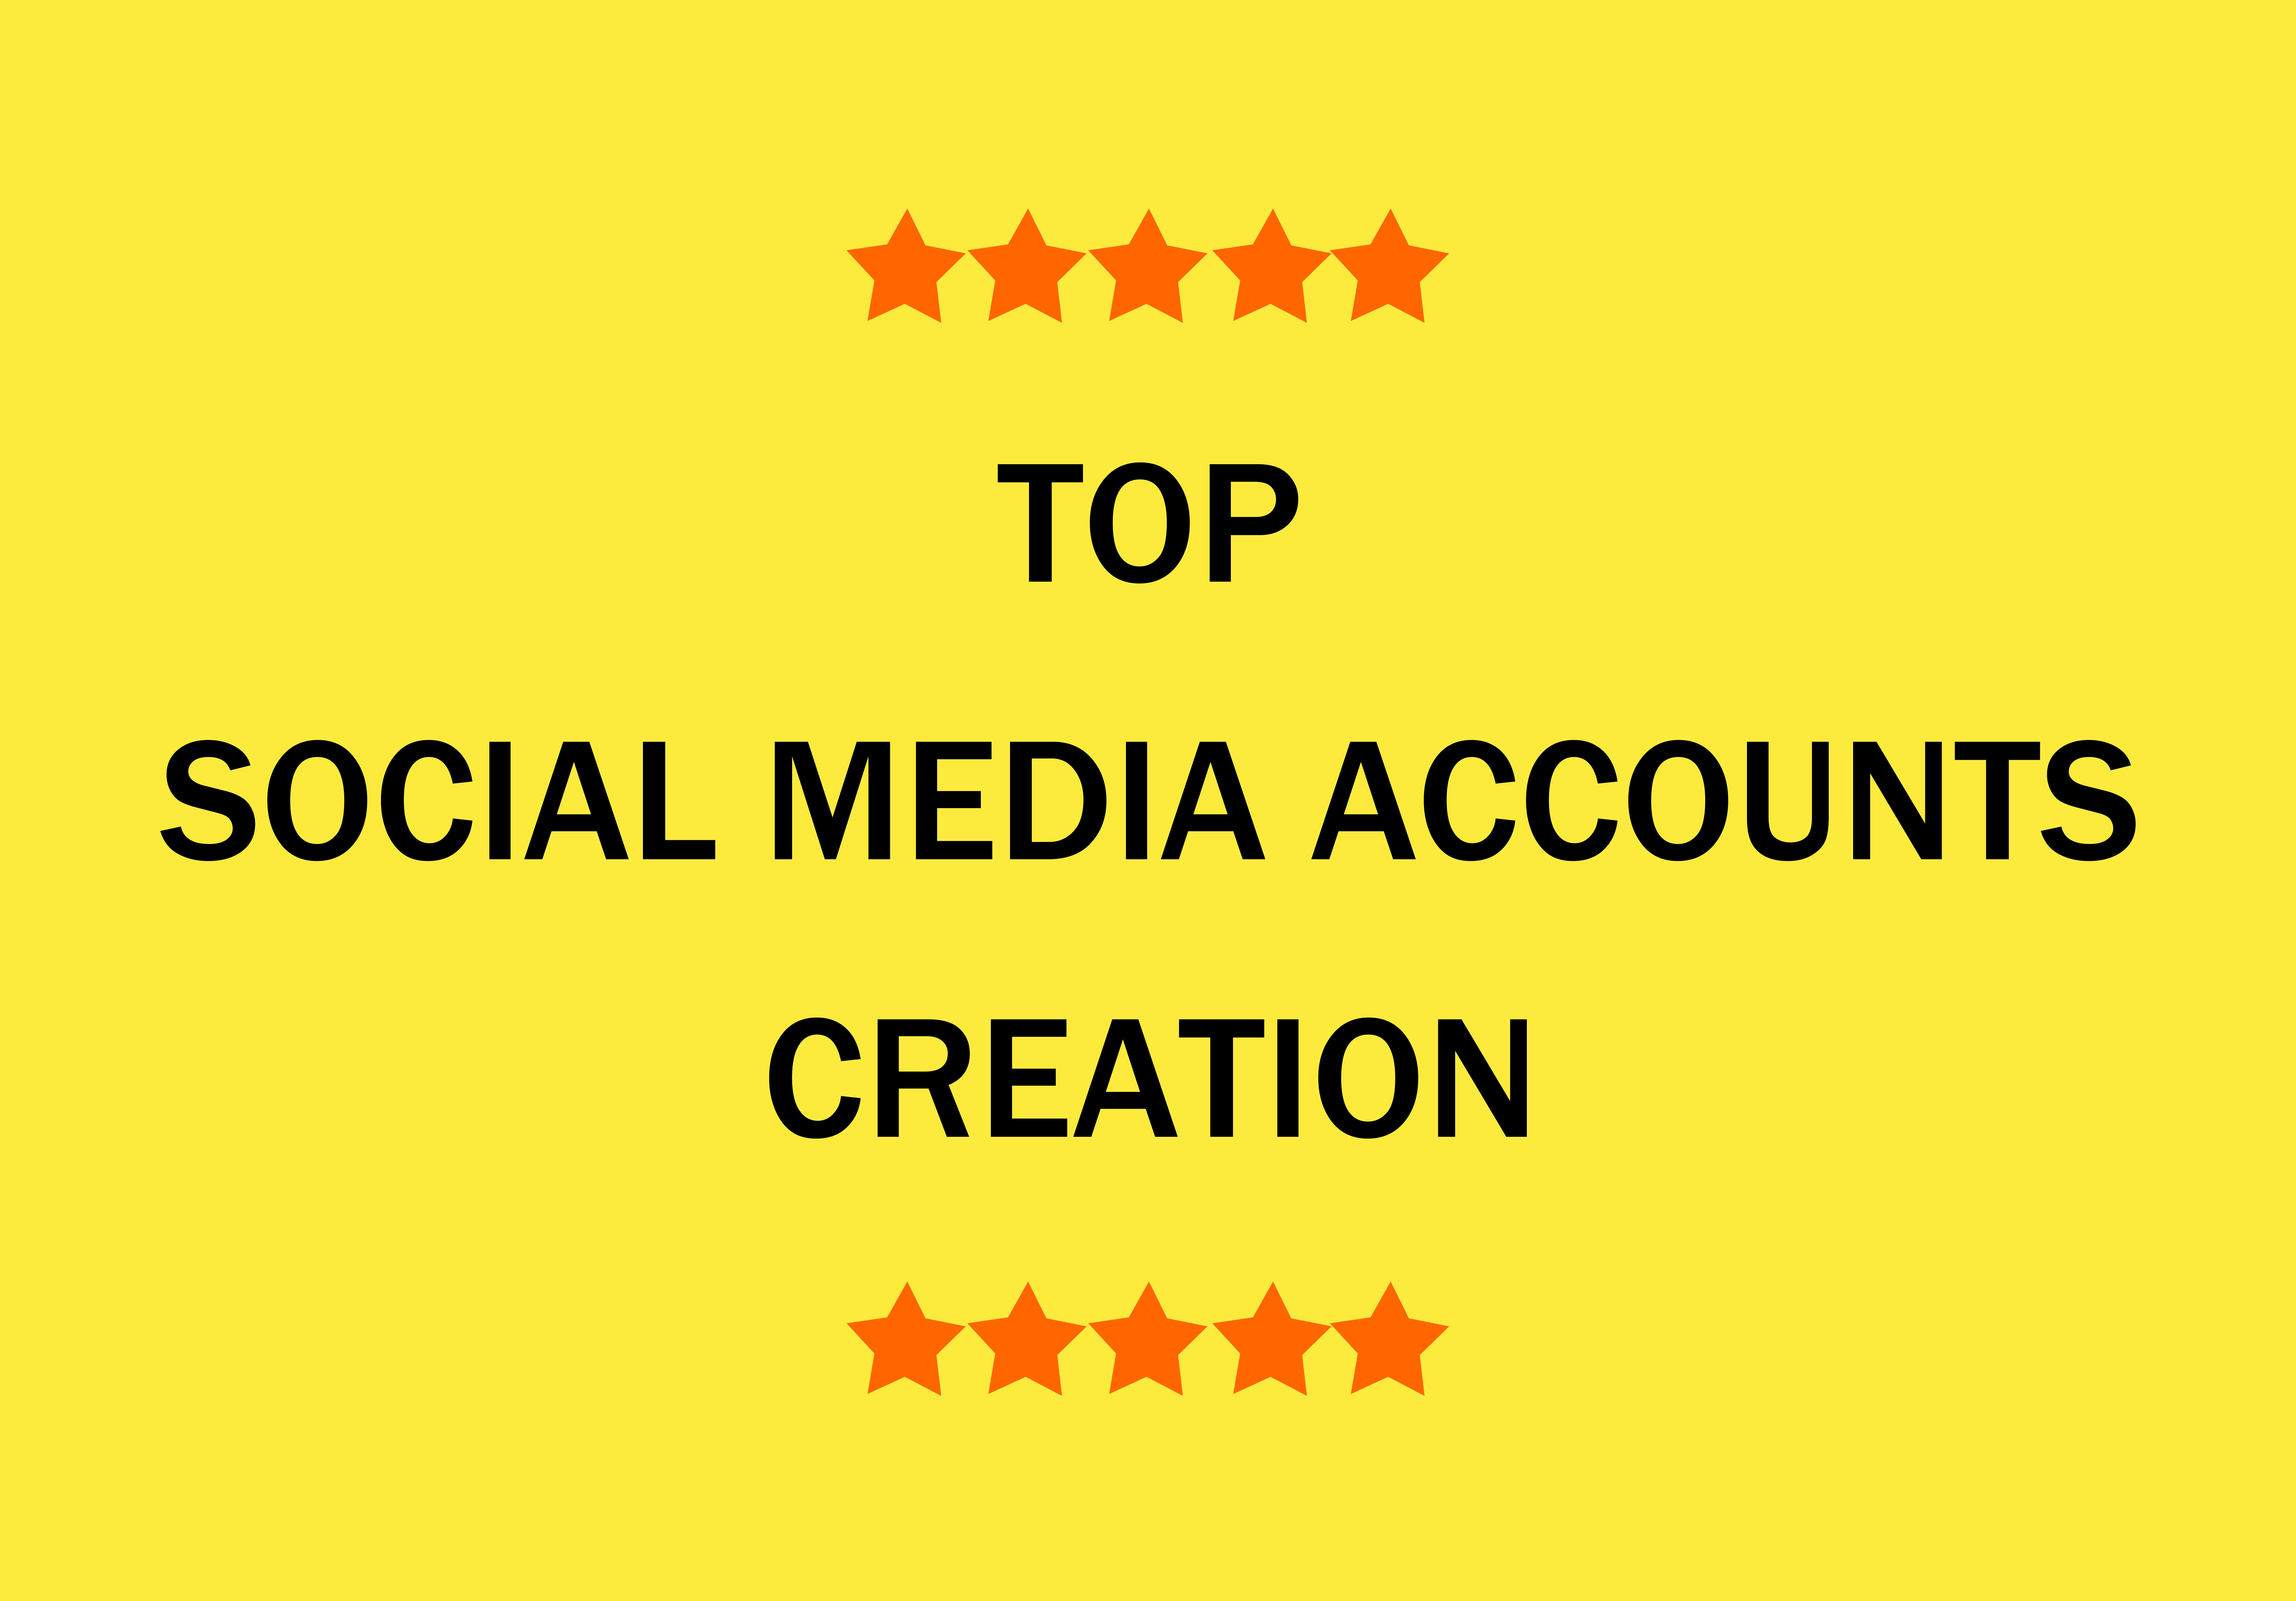 Create Top 20 Profile/Account For Brand Creation